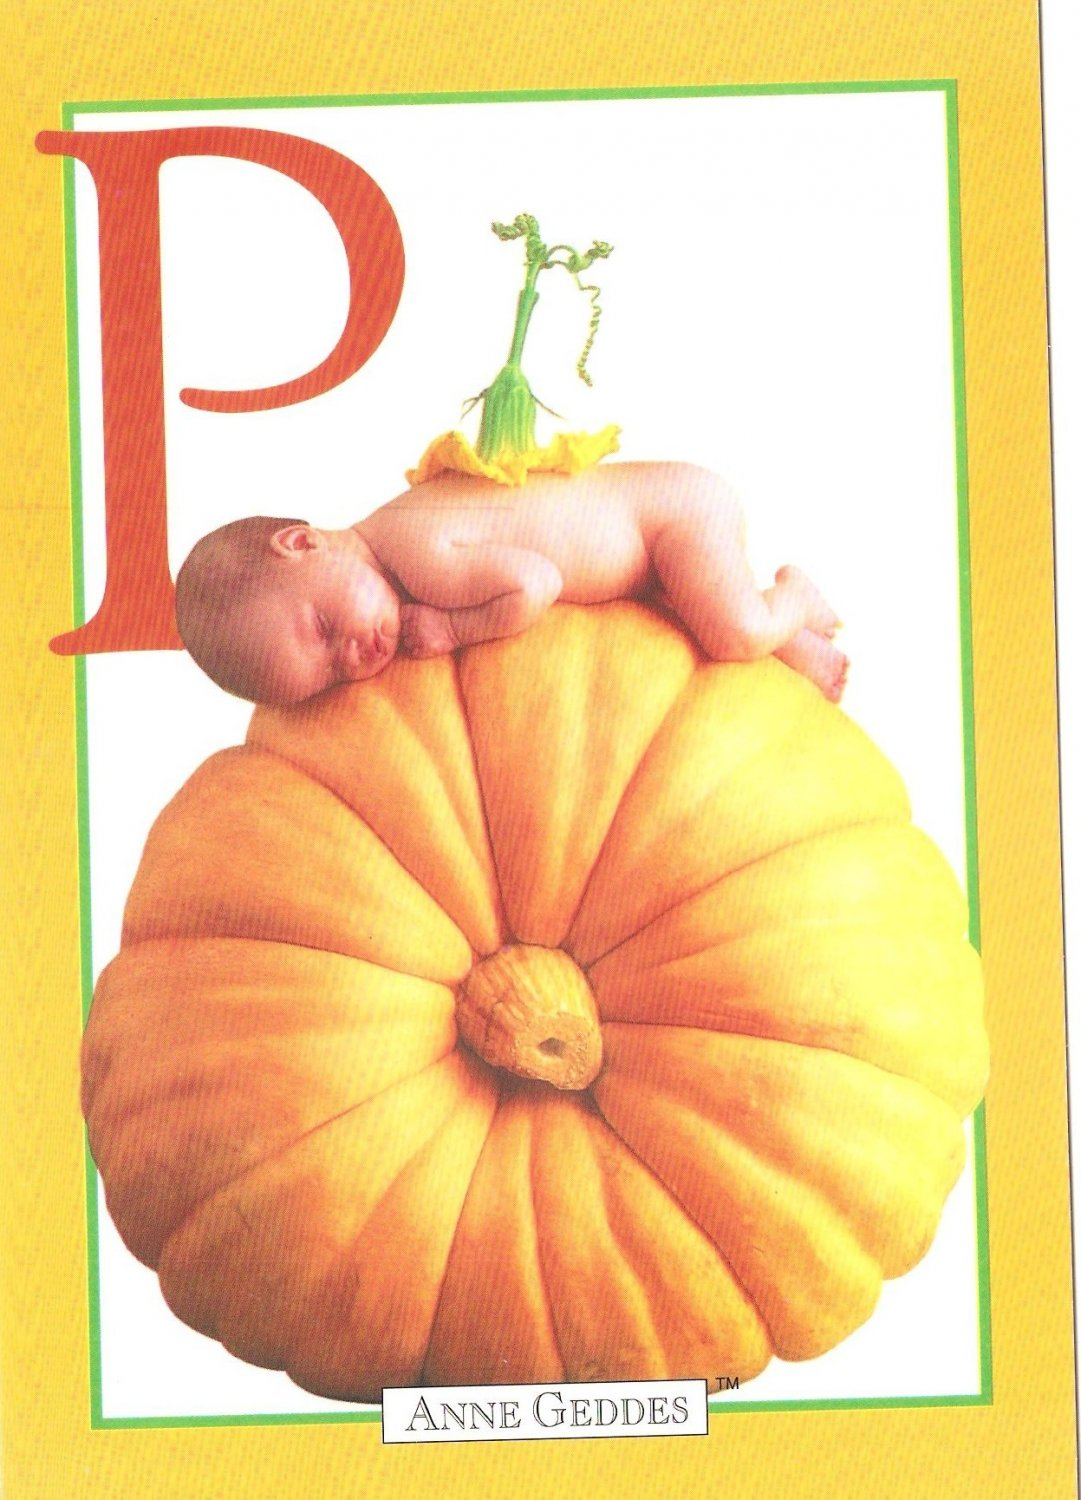 Anne Geddes Postcard 1995 605-069 P is for Pumpkin Baby 4x6